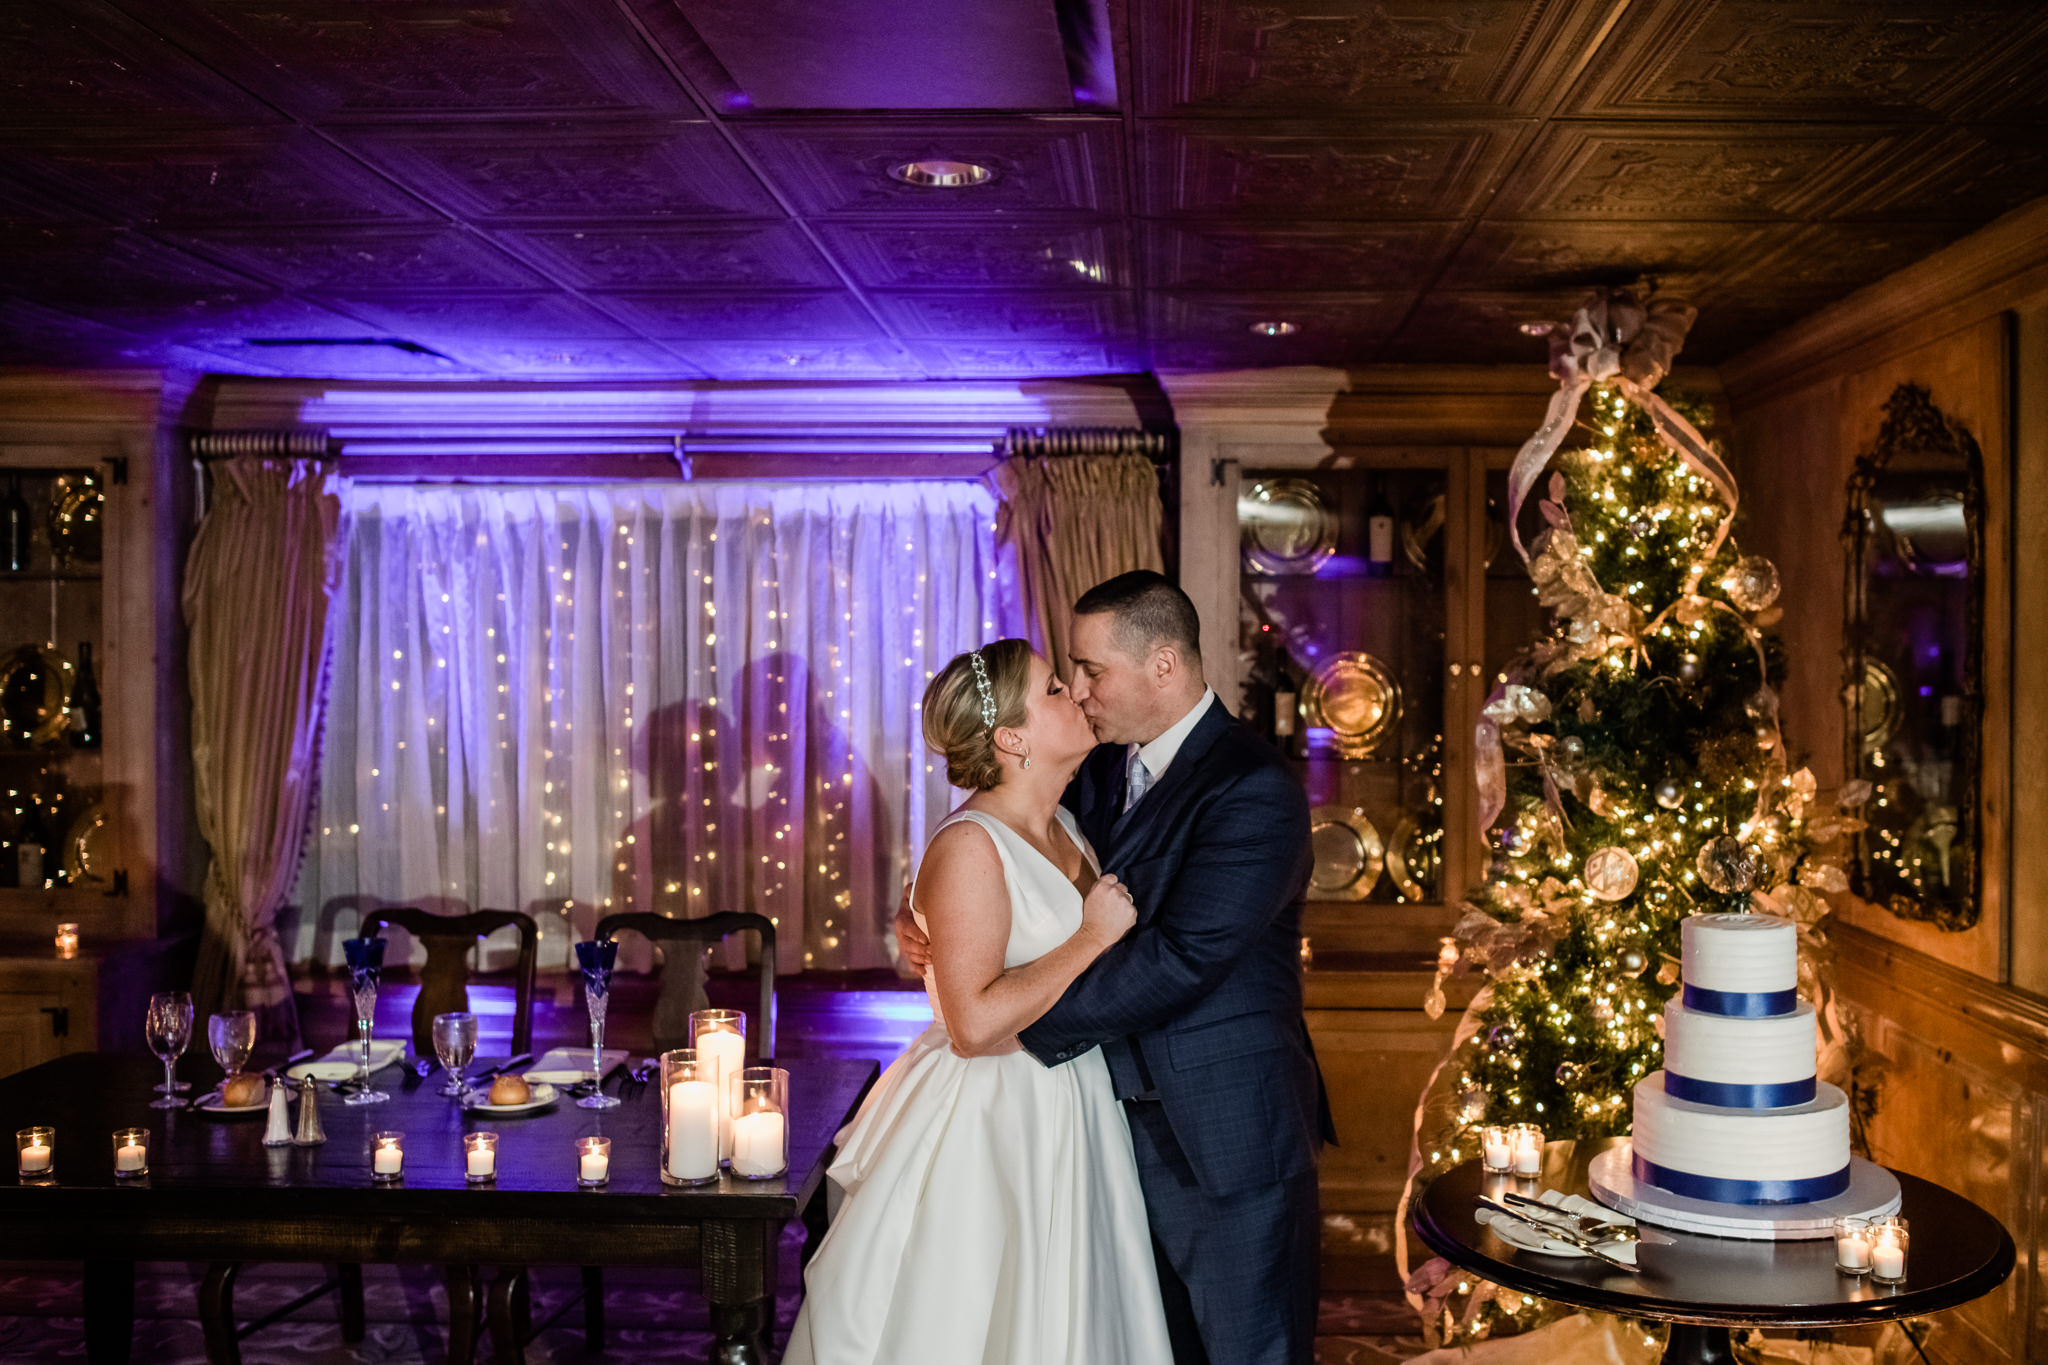 Bride and groom inside during their winter wedding at the grain house in basking ridge new jersey with blue and orange Christmas themed lights